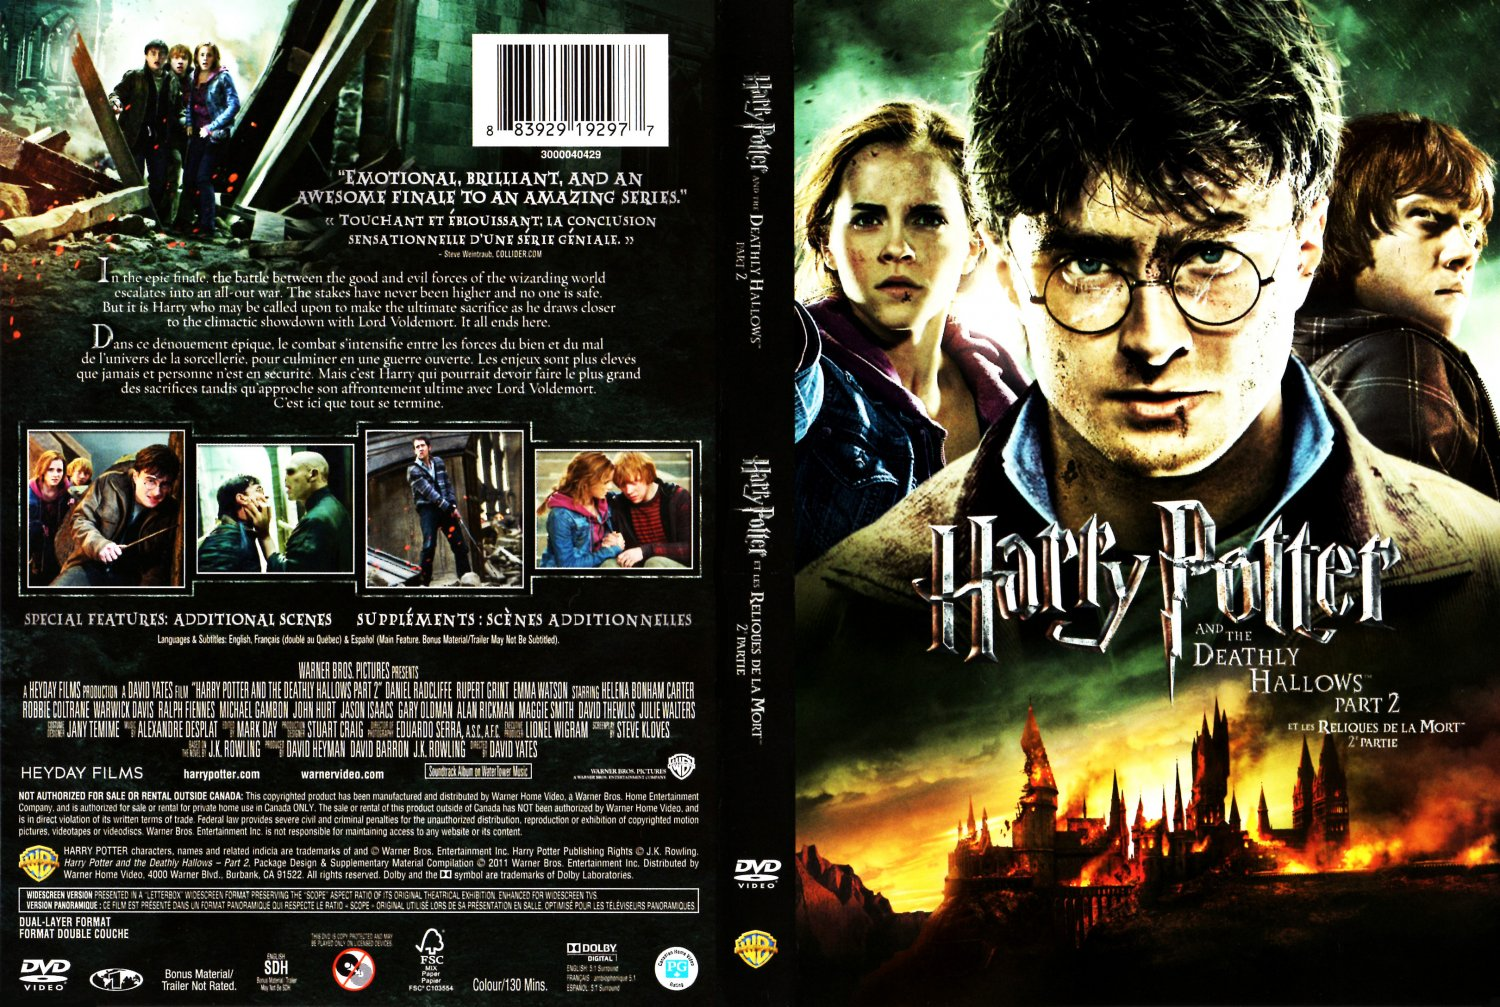 Harry Potter Deathly Hallows Part 2 DVD Cover